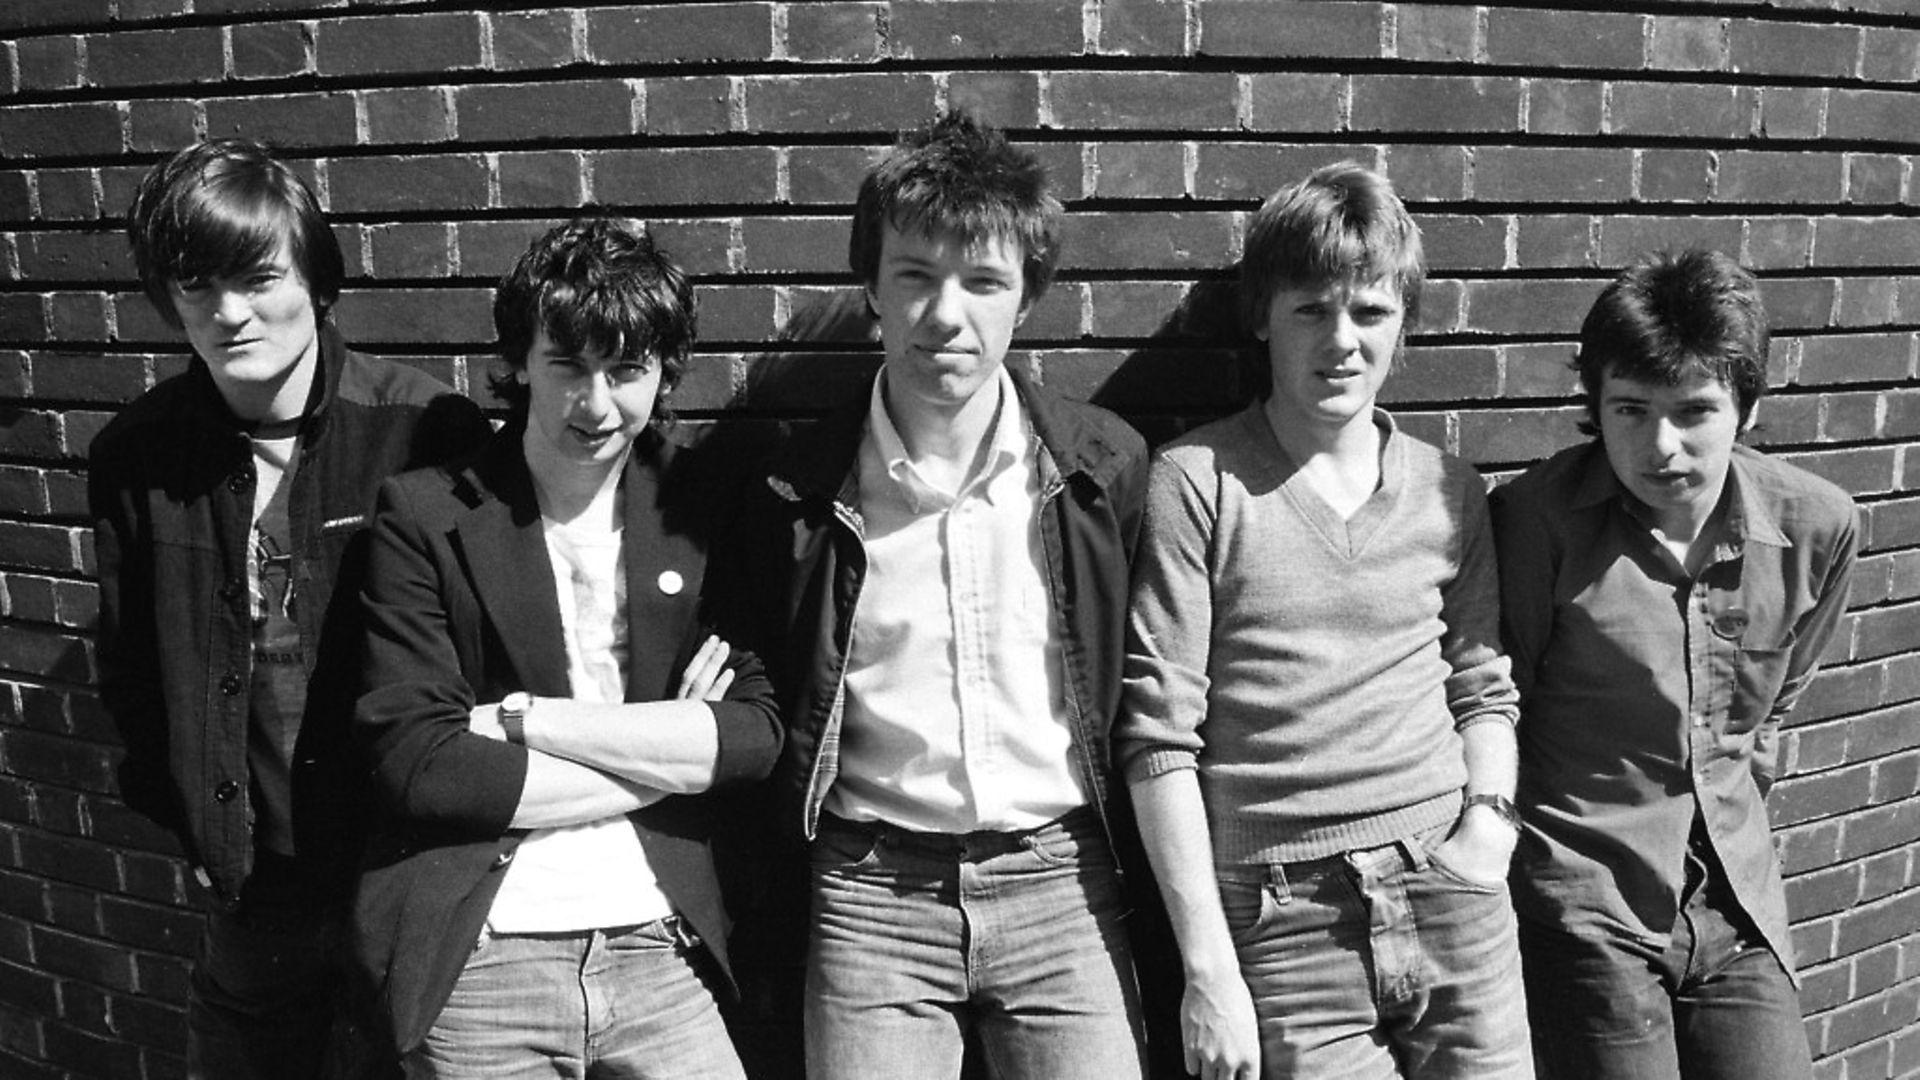 The Undertones. 15th May 1980. (Photo by Bill Kennedy/Mirrorpix via Getty Images) - Credit: Getty Images